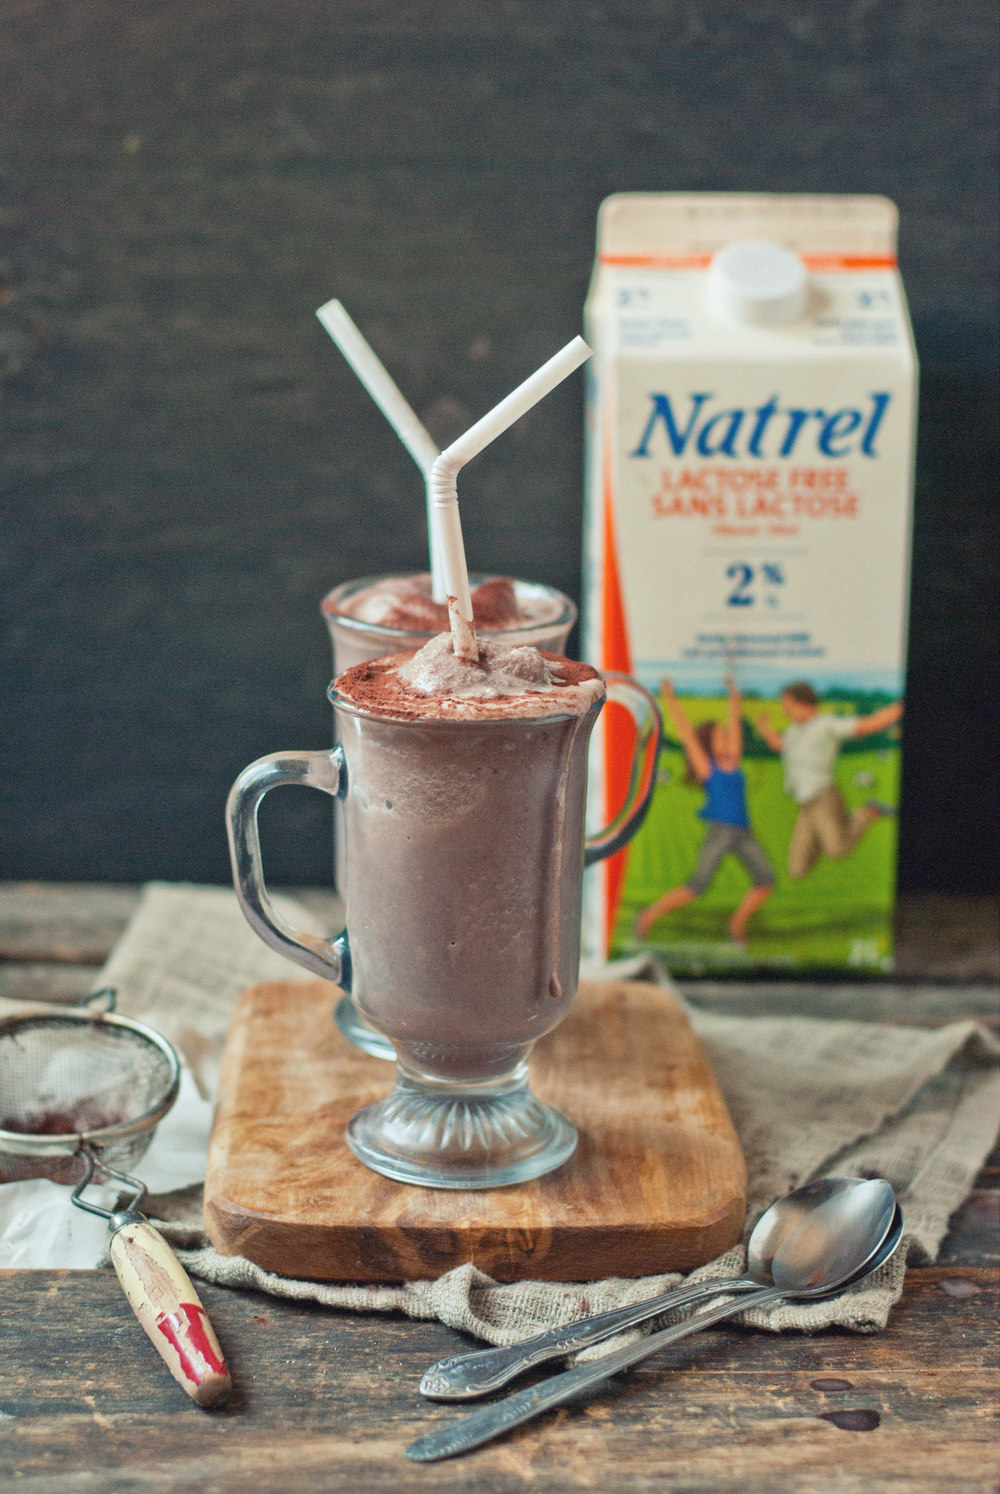 Social Influence Strategy with Co-Creators : we invited a bunch of amazing food enthusiasts to create lactose free recipe. The chocolate milkshake was created by  The Gouda Life  for the Lactose Free Campaign.